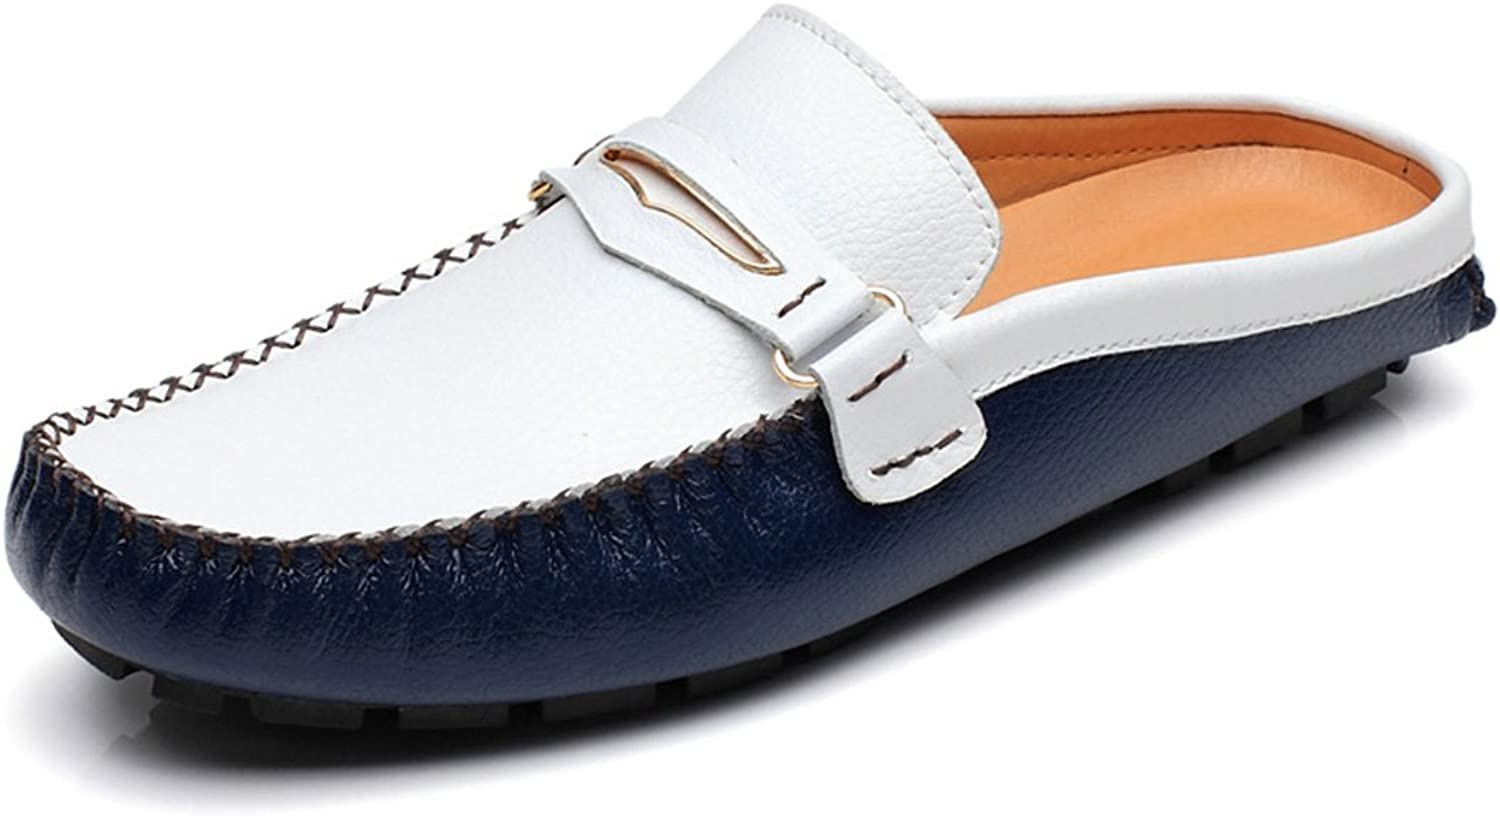 Go Tour Mens Tassels Leather Mule Slip-on Backless Slippers shoes